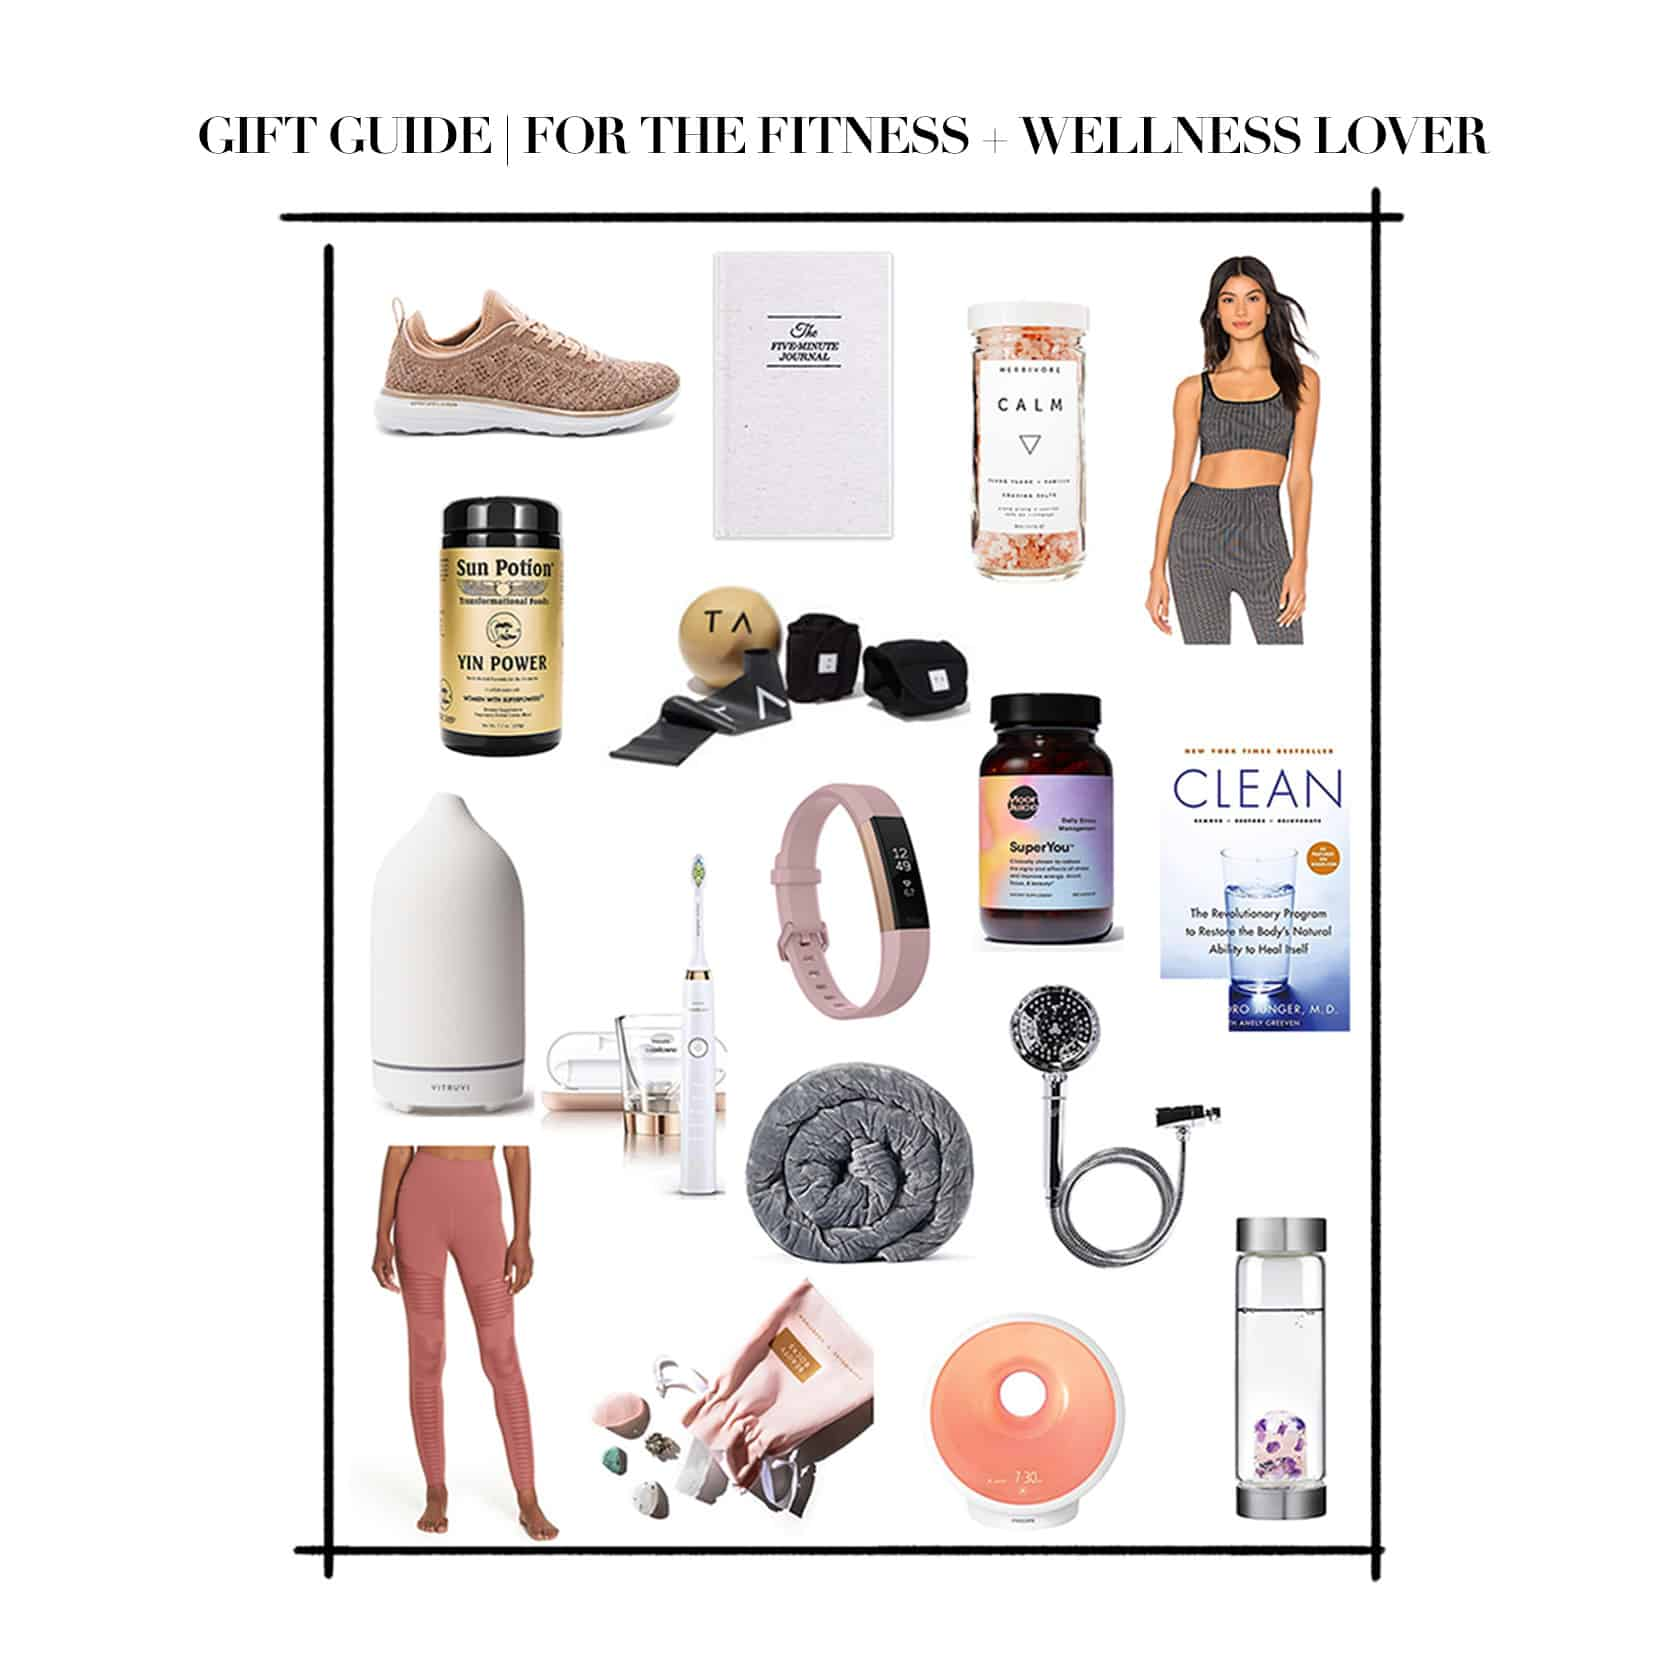 Gift Guide For The Fitness + Wellness Lover